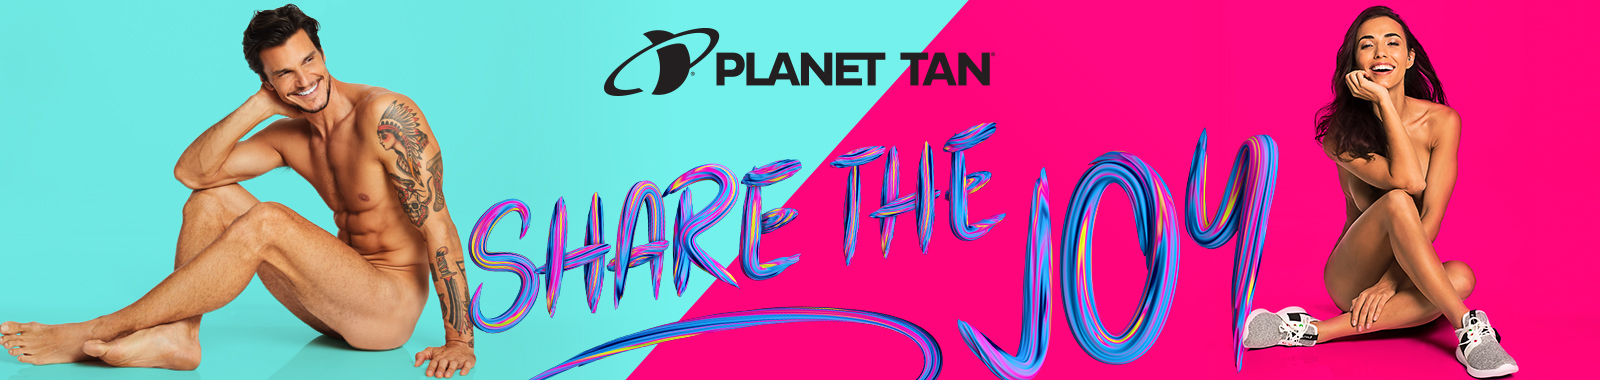 Planet Tan Share the Joy